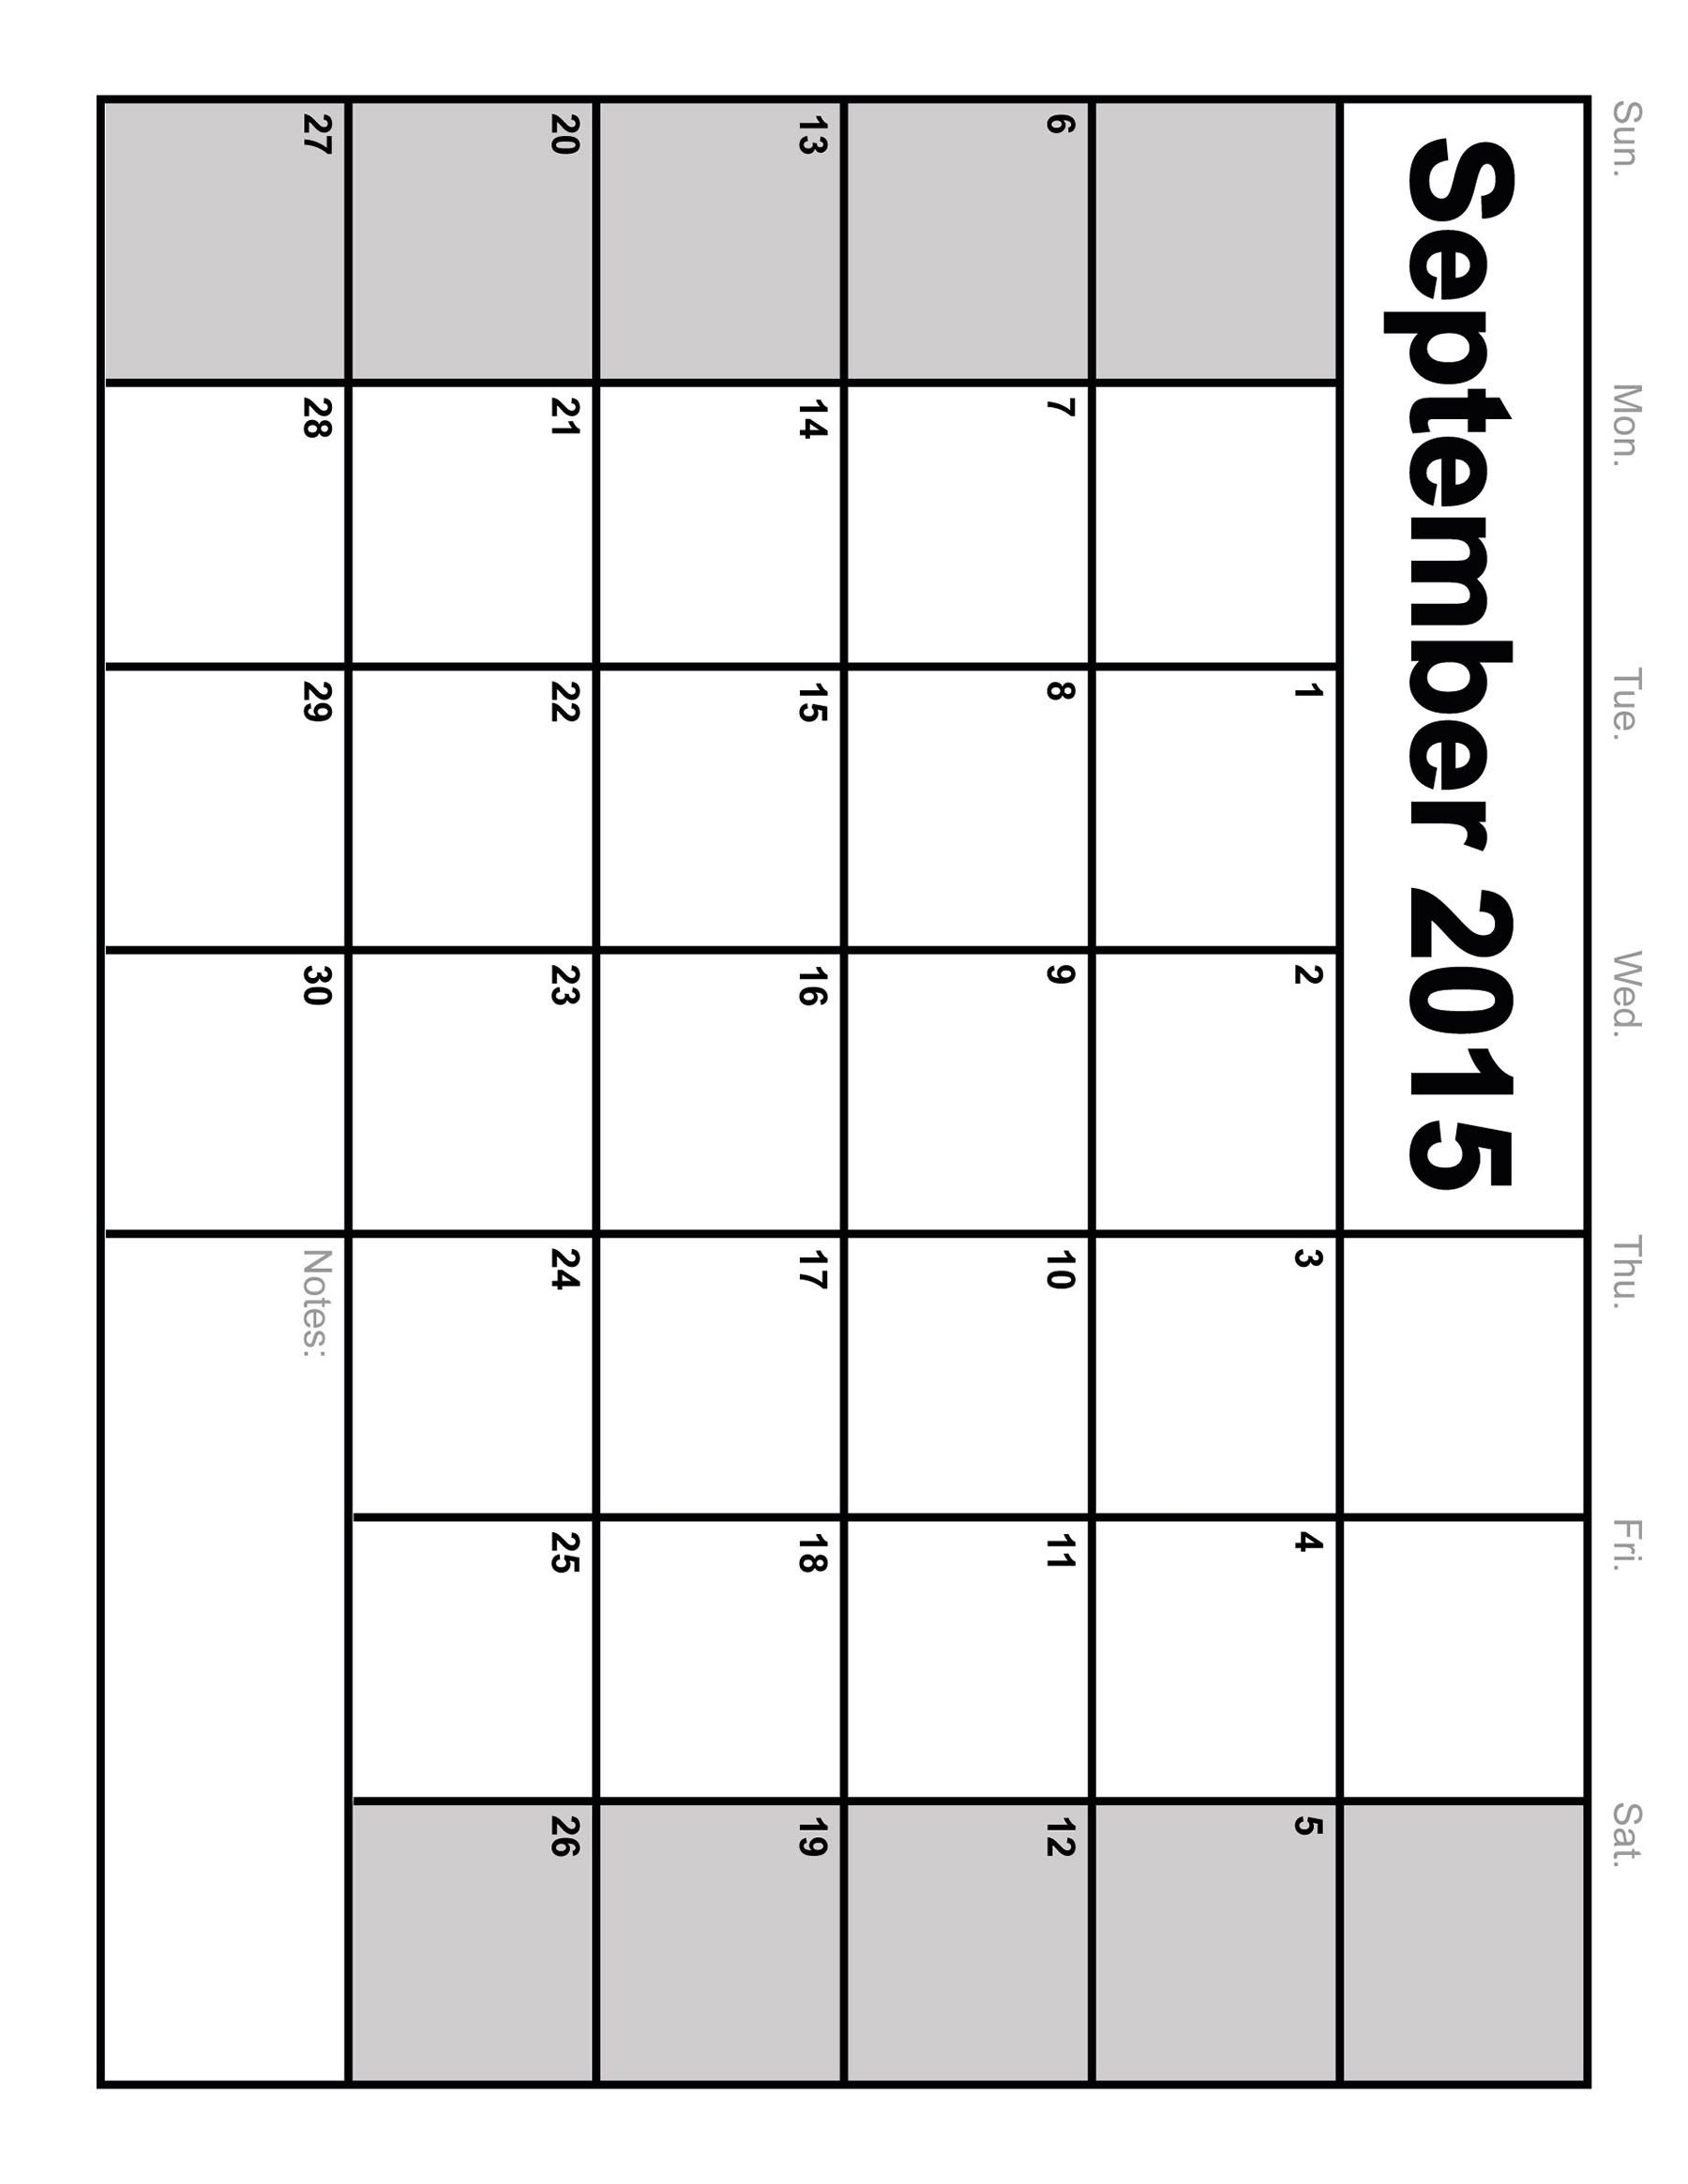 Full Size Printable Blank Calendar - Template Calendar Design Fill Out A Calender Online And Print Out